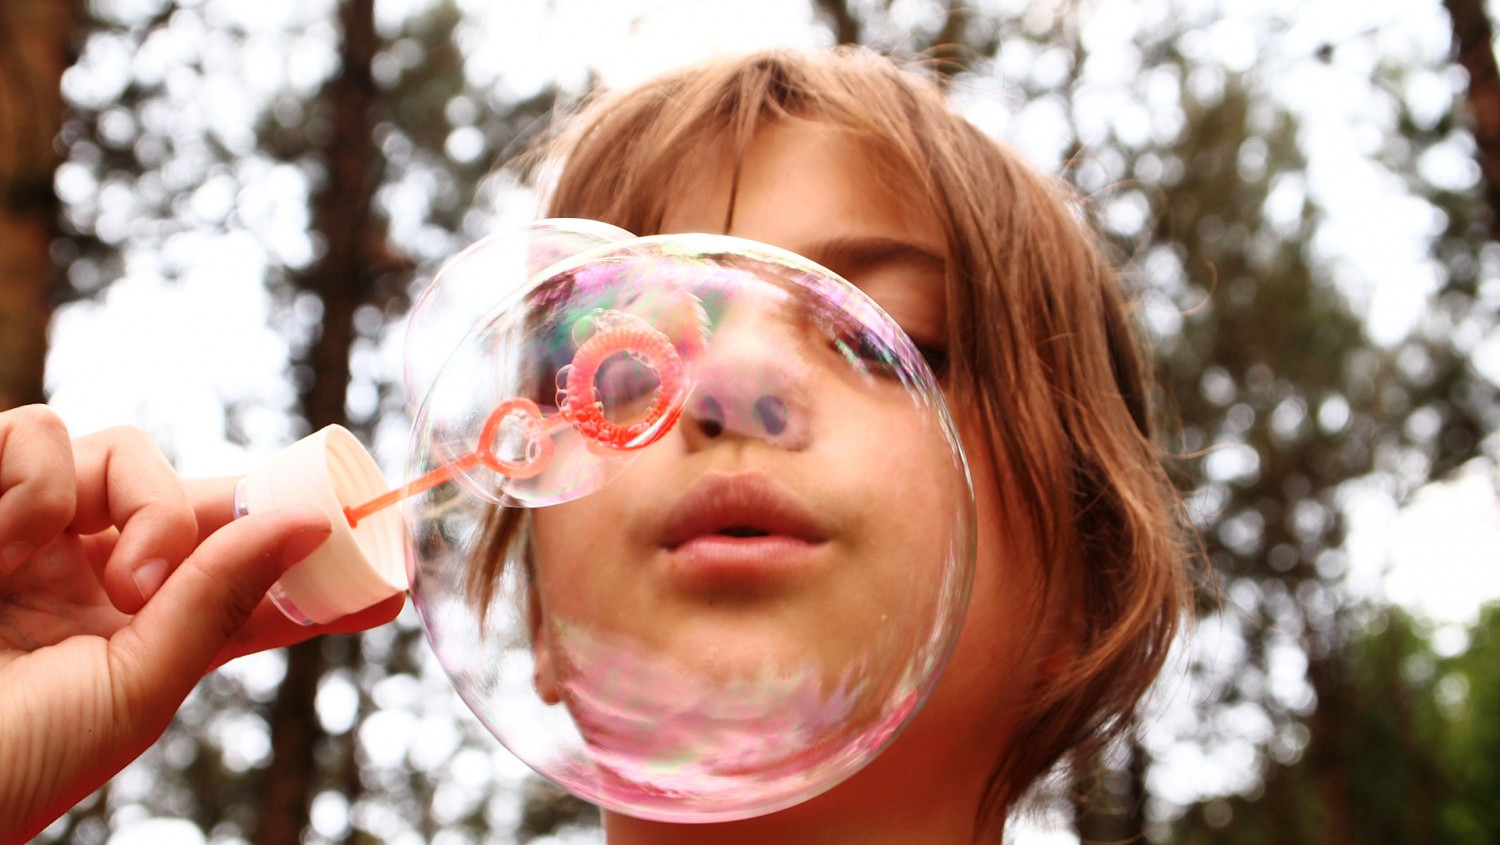 blow bubbles 668950 1920